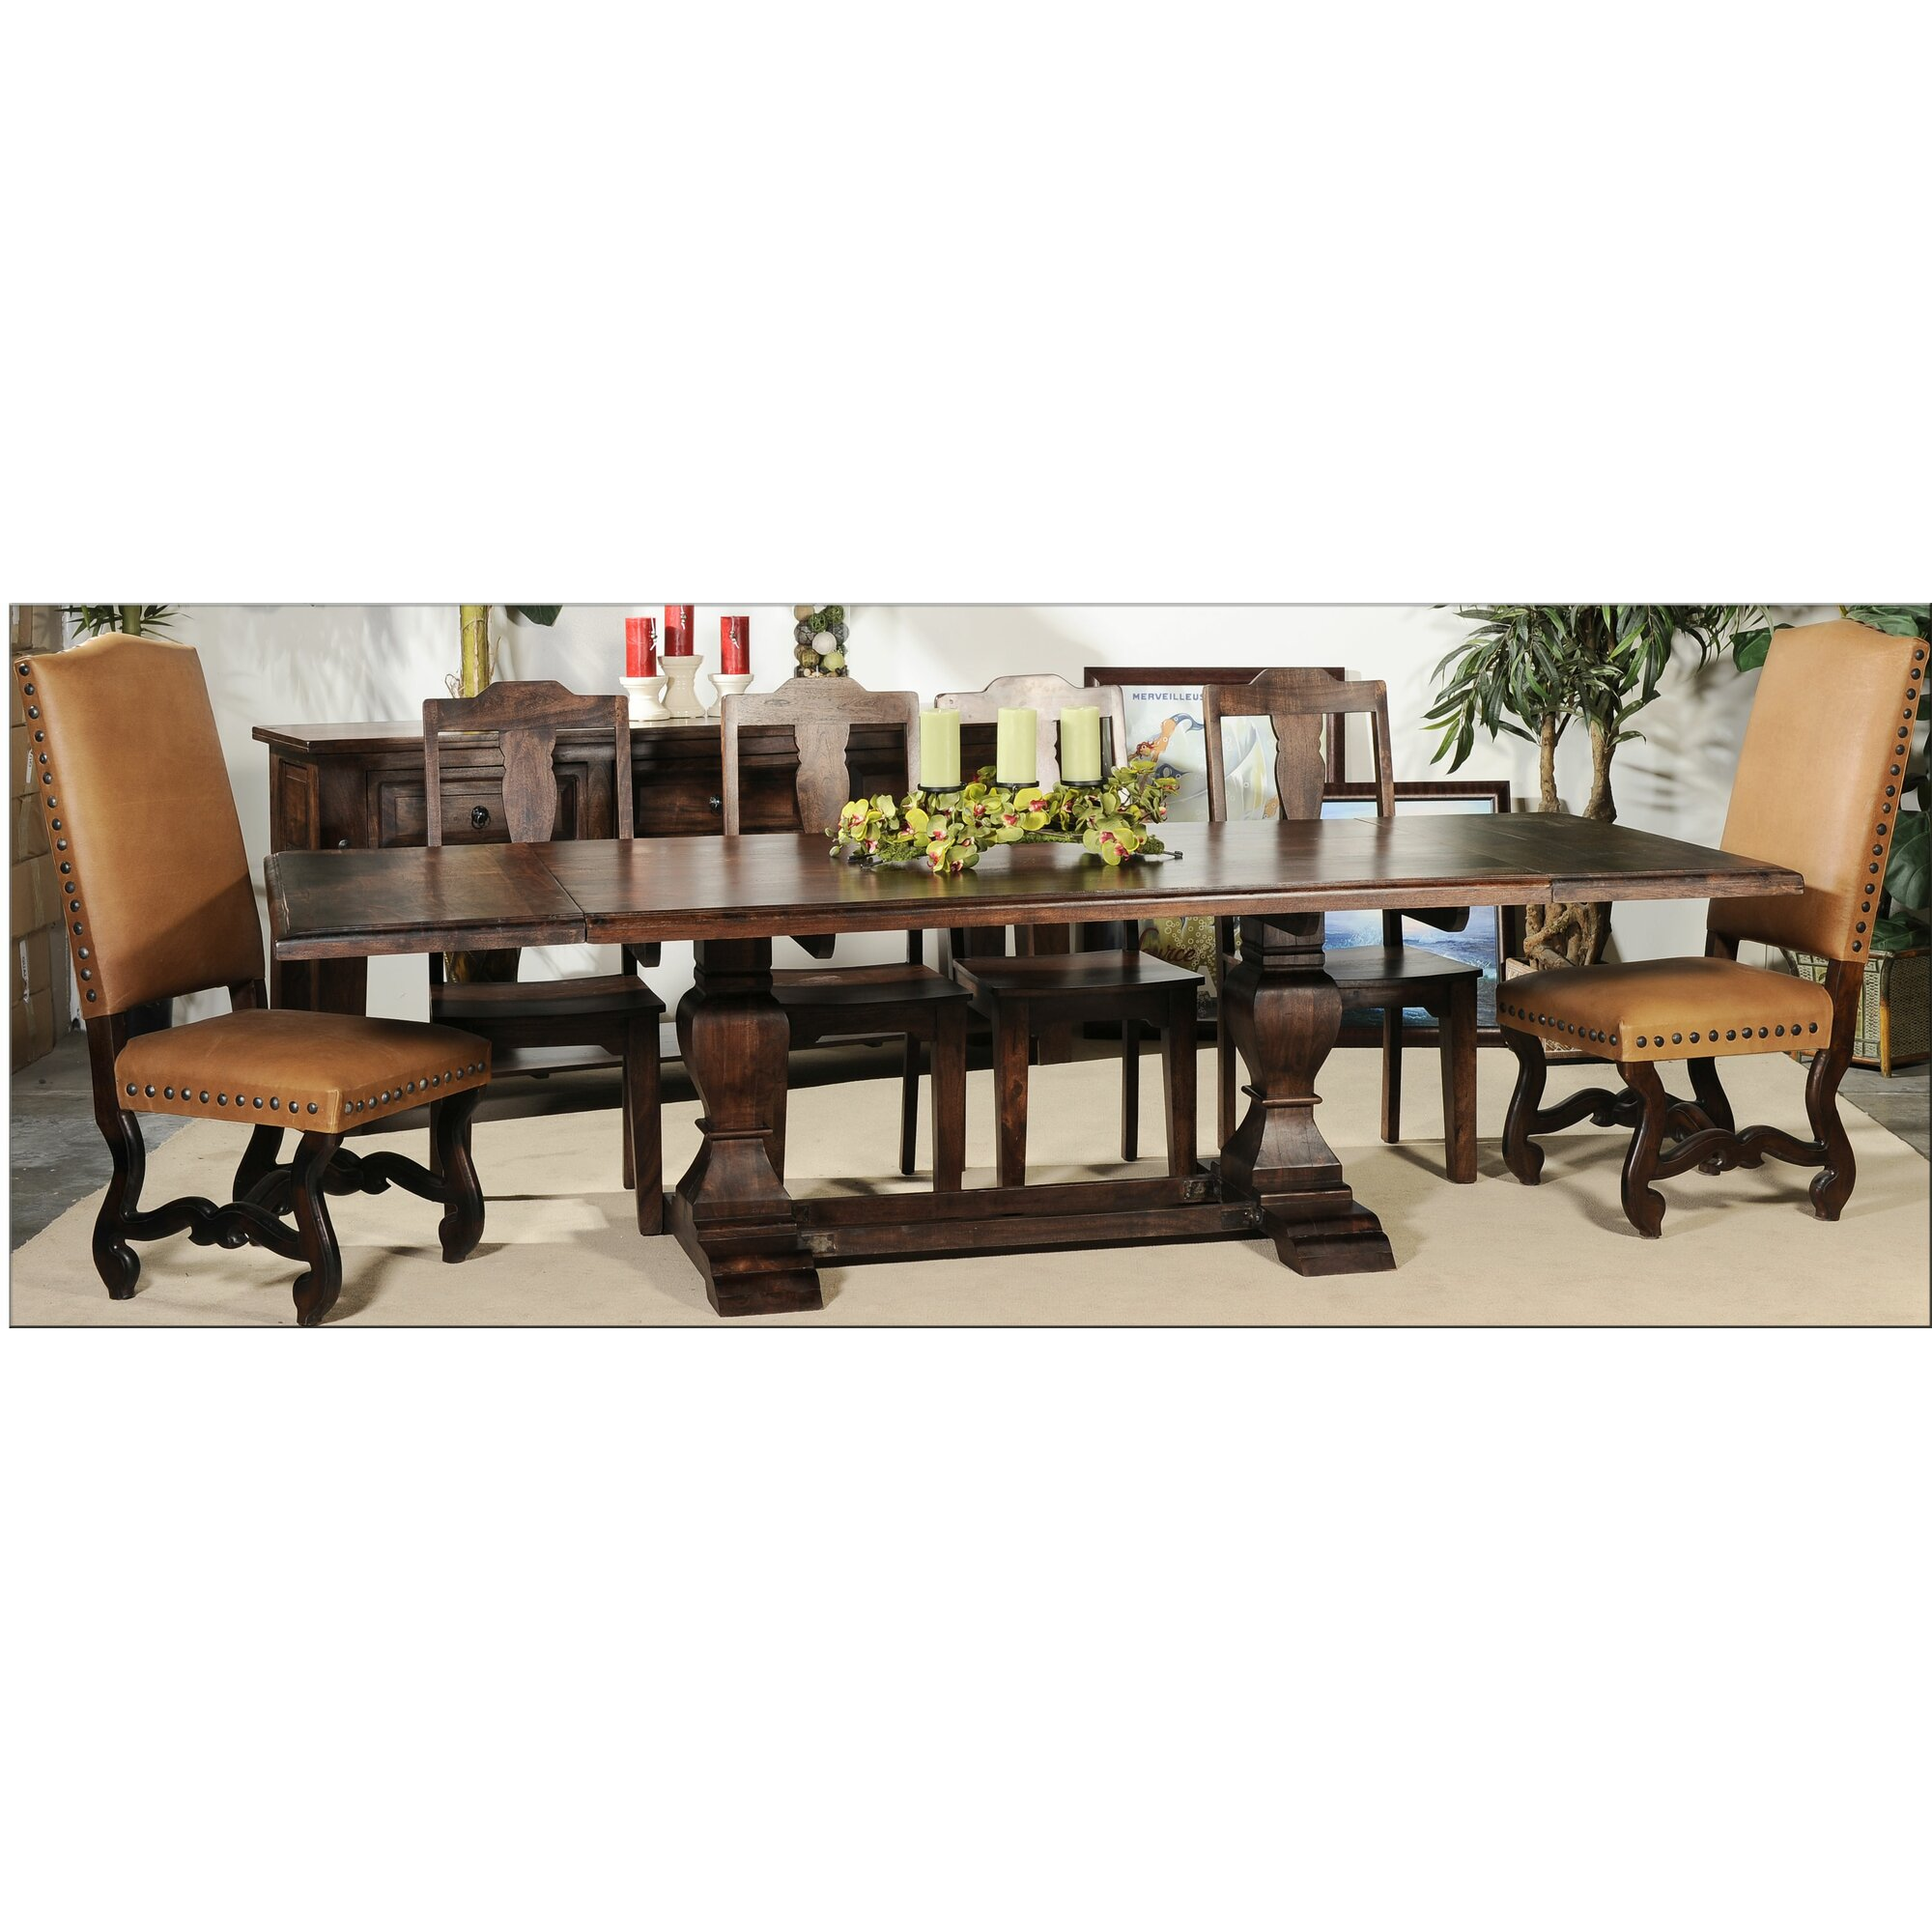 Aishni home furnishings castle extendable dining table for Find home furnishings